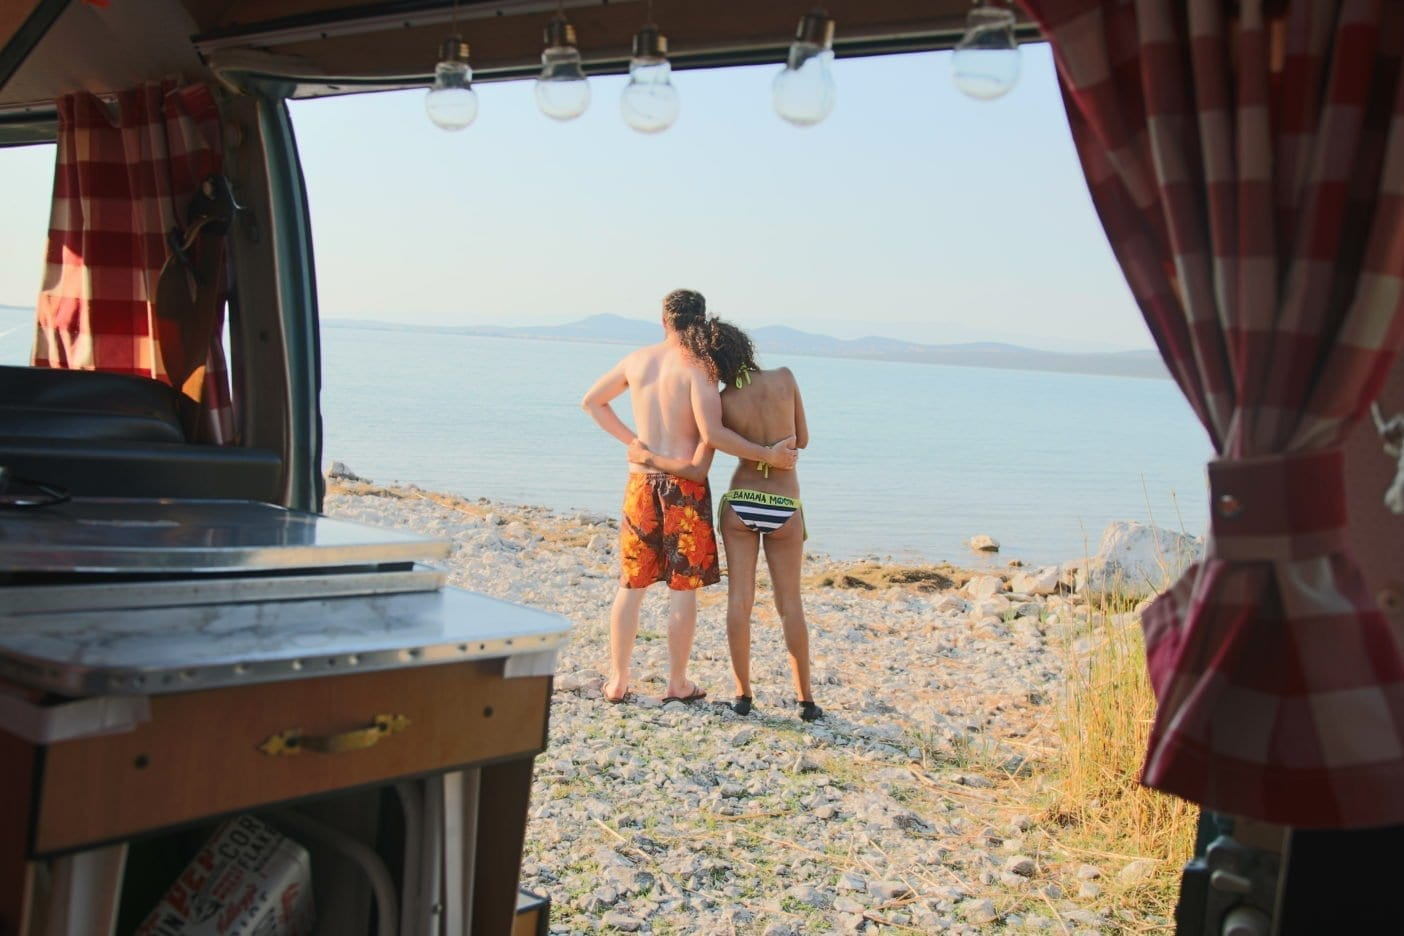 Vw-T2-Bulli-VW-Camper-Van-Campervan-camping-interior-couple-beach-bikini